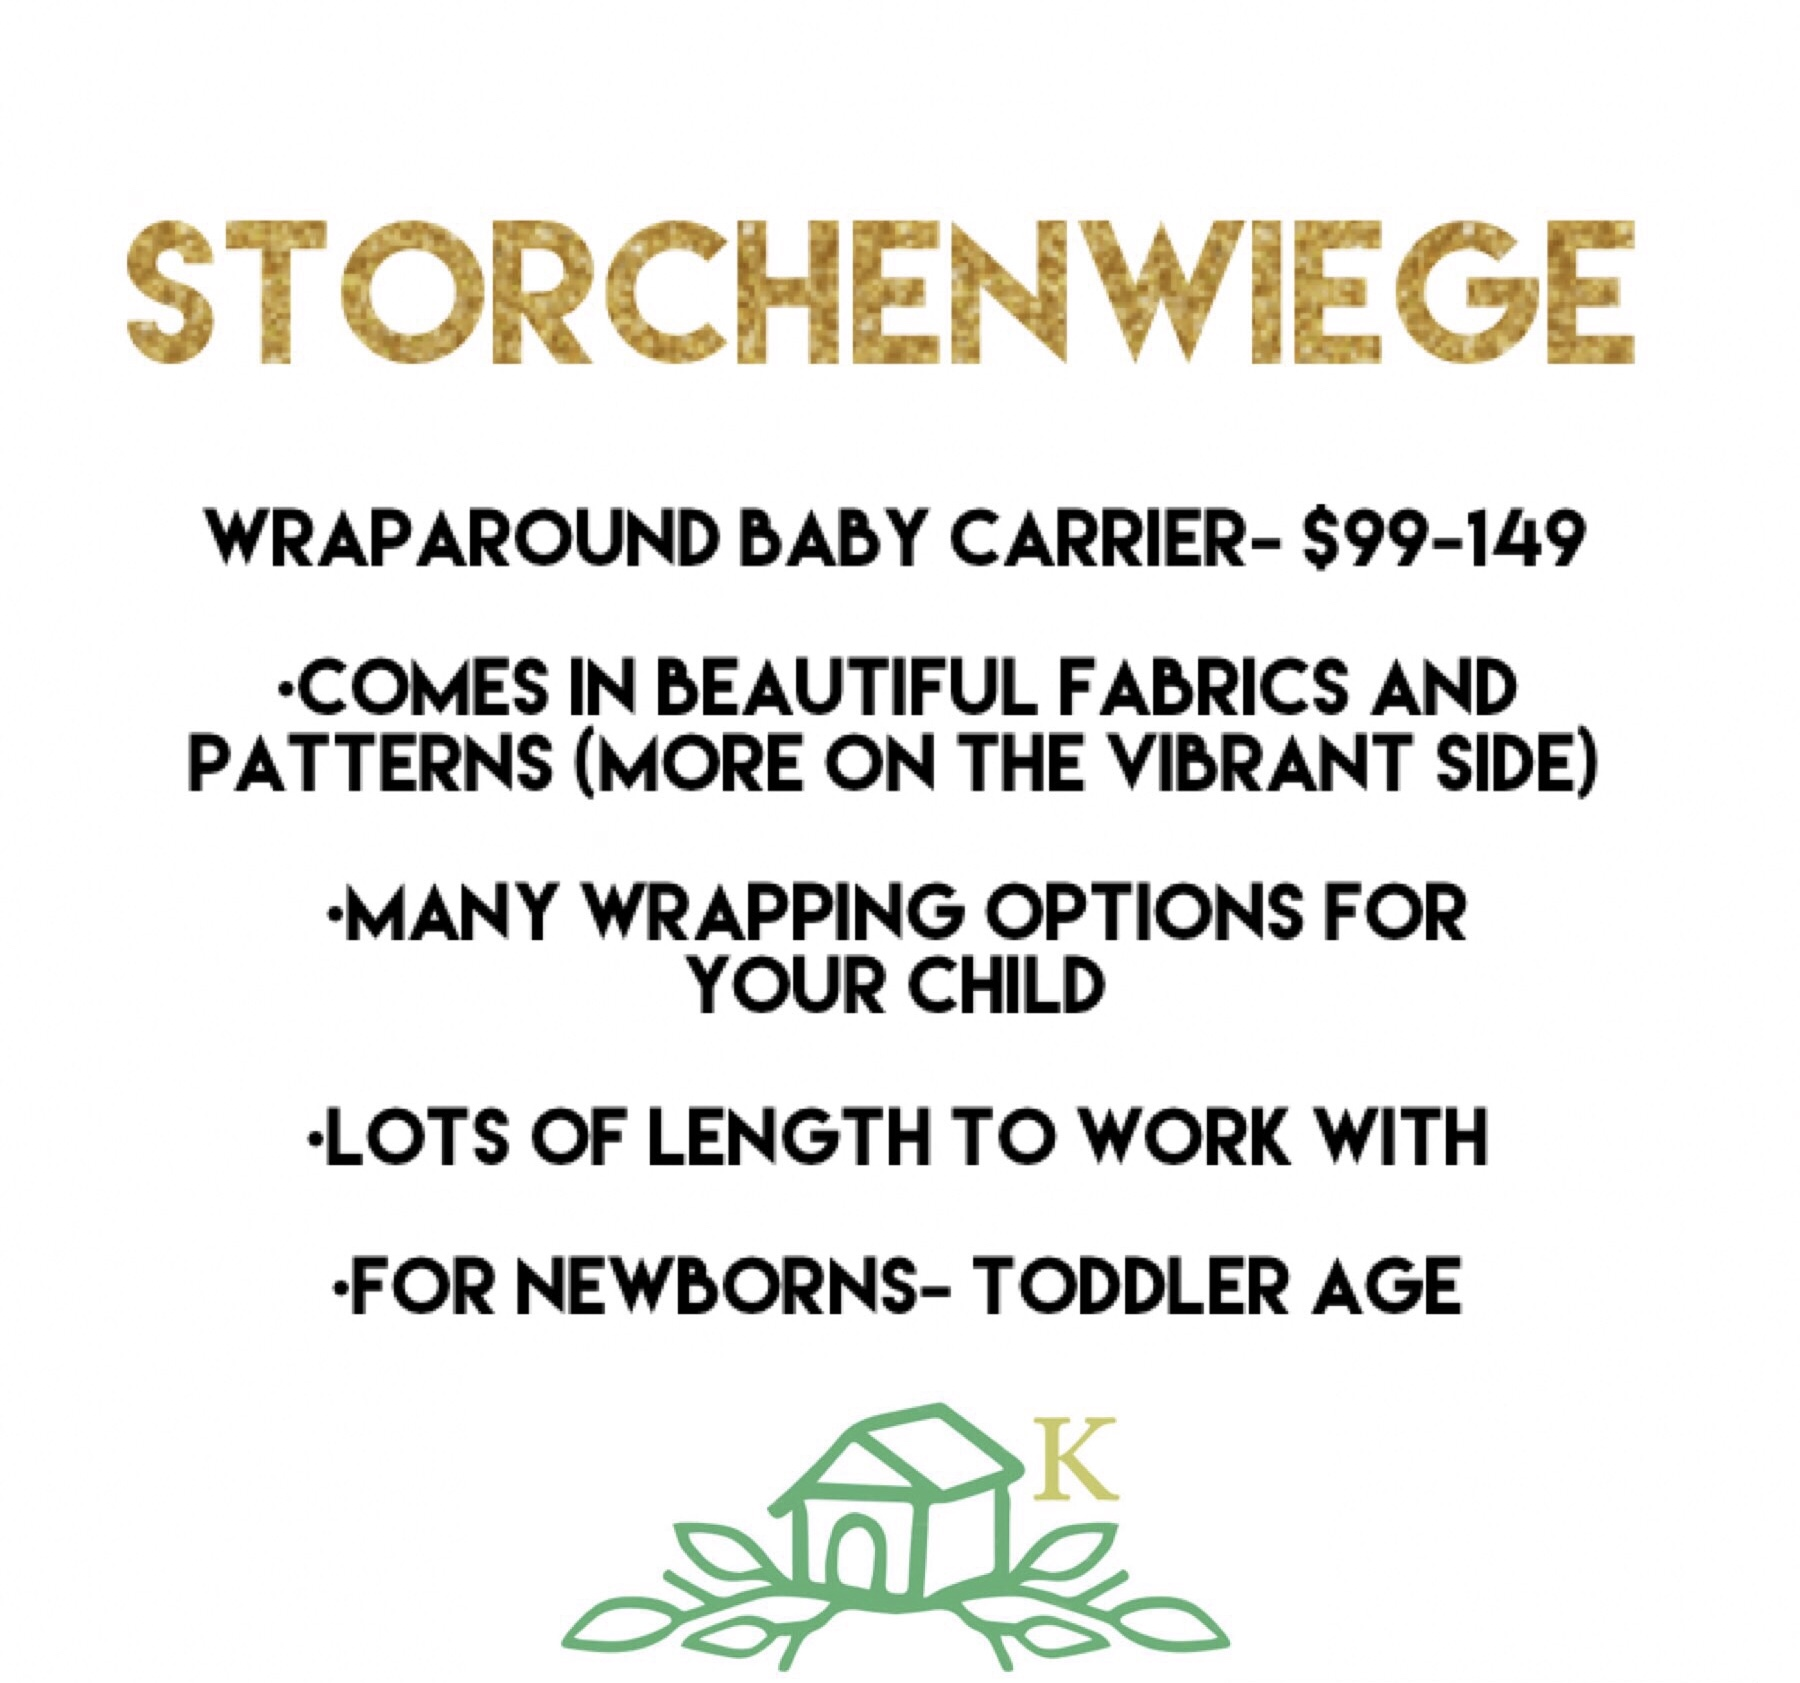 purchase here:  https://wrapyourbaby.com/shop/woven-wraps-for-dads/storchenwiege-vicky/